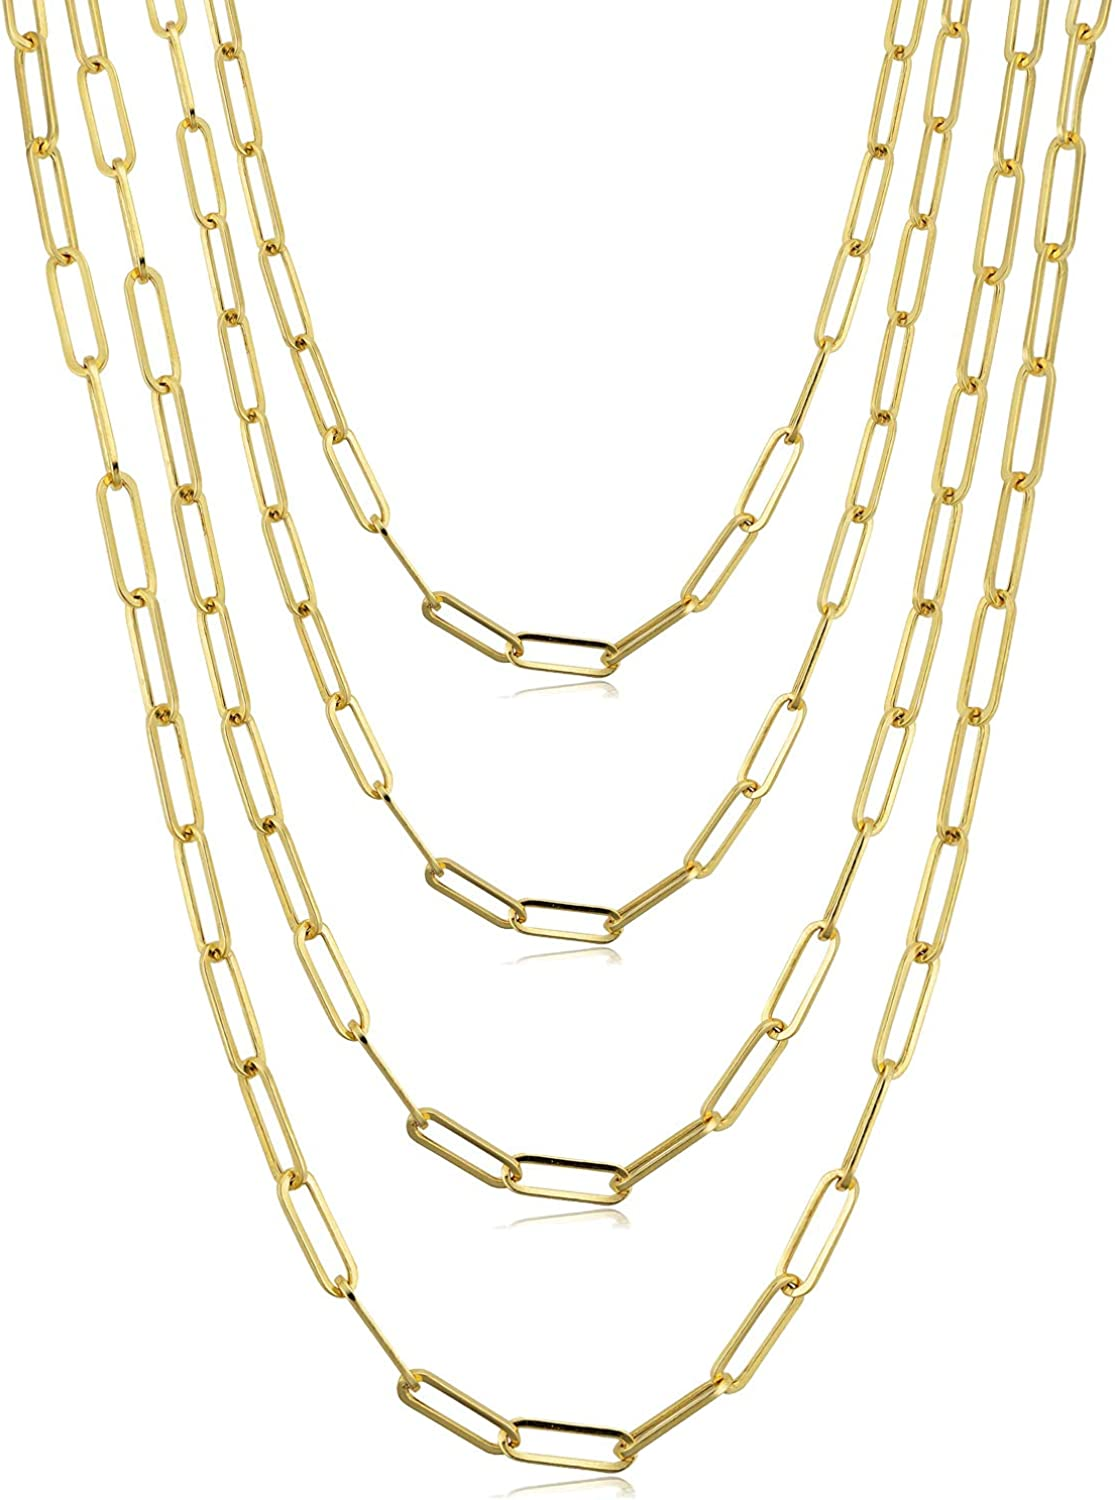 14K Gold Plated Chain Necklace for Women Paperclip Linked Chain Necklace Stainless Steel Flat Snake Chain Necklace Set 4Pcs